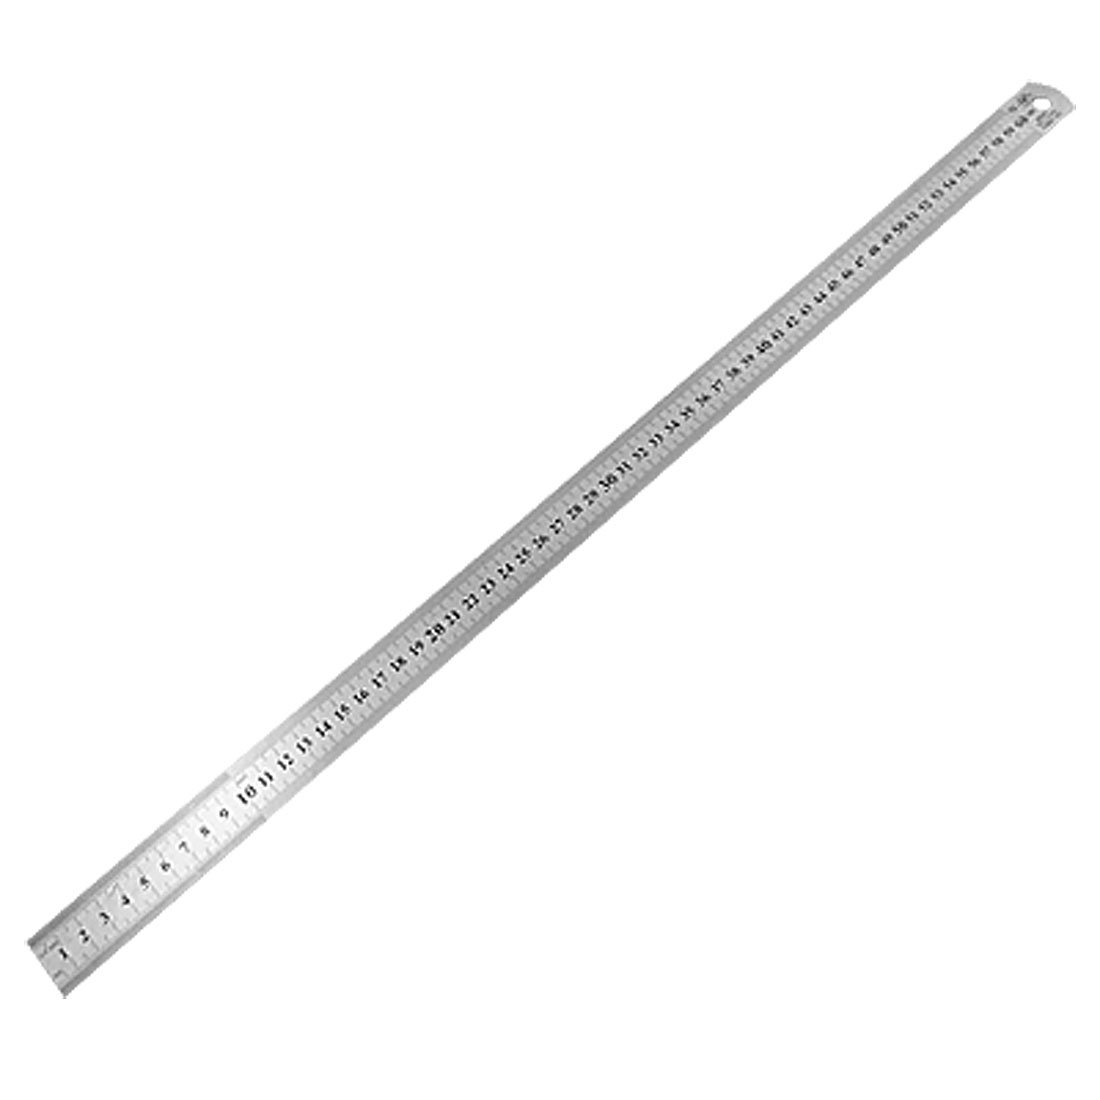 SOSW-60cm Stainless Metal Measuring Straight Ruler 300mm multifunctional combination square ruler stainless steel horizontal removable square ruler angle square tools metal ruler